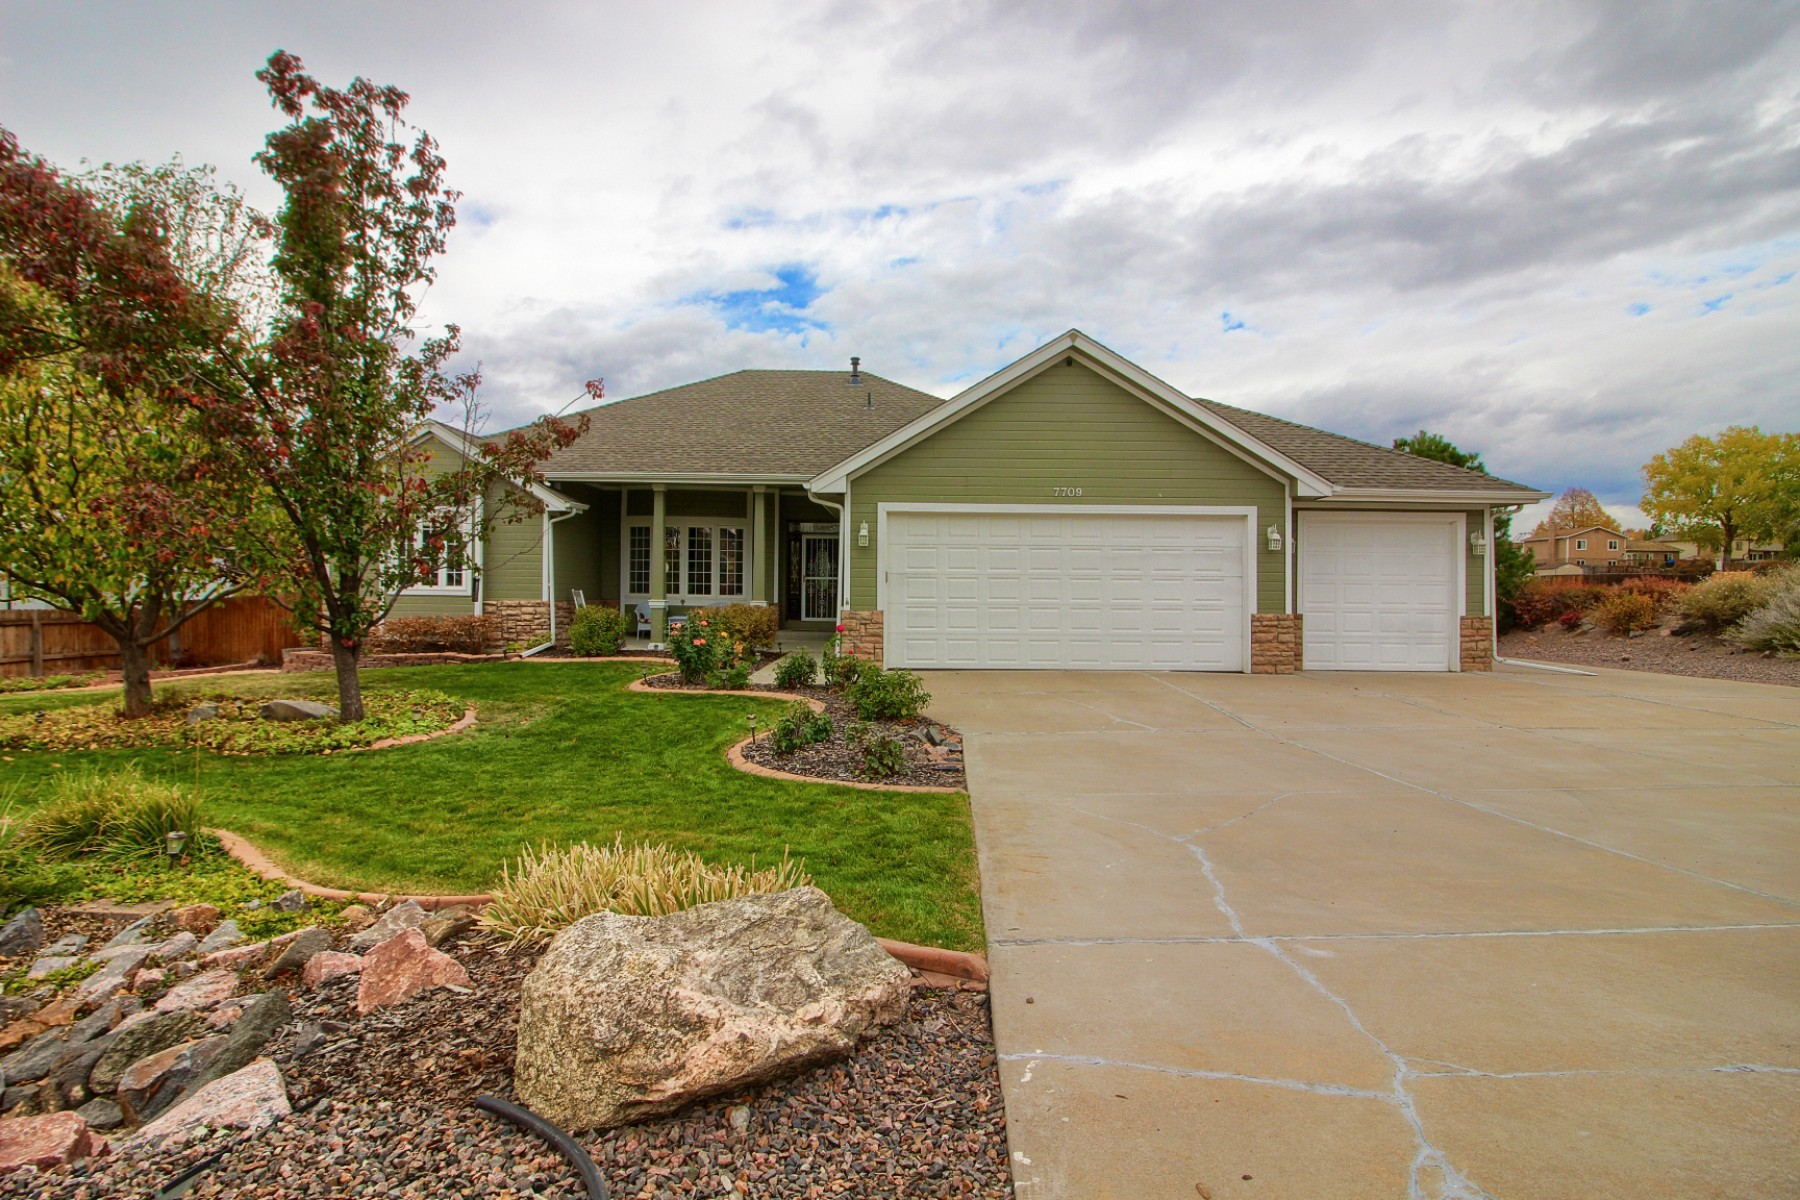 7709 South Flower Street, Littleton, CO 80128